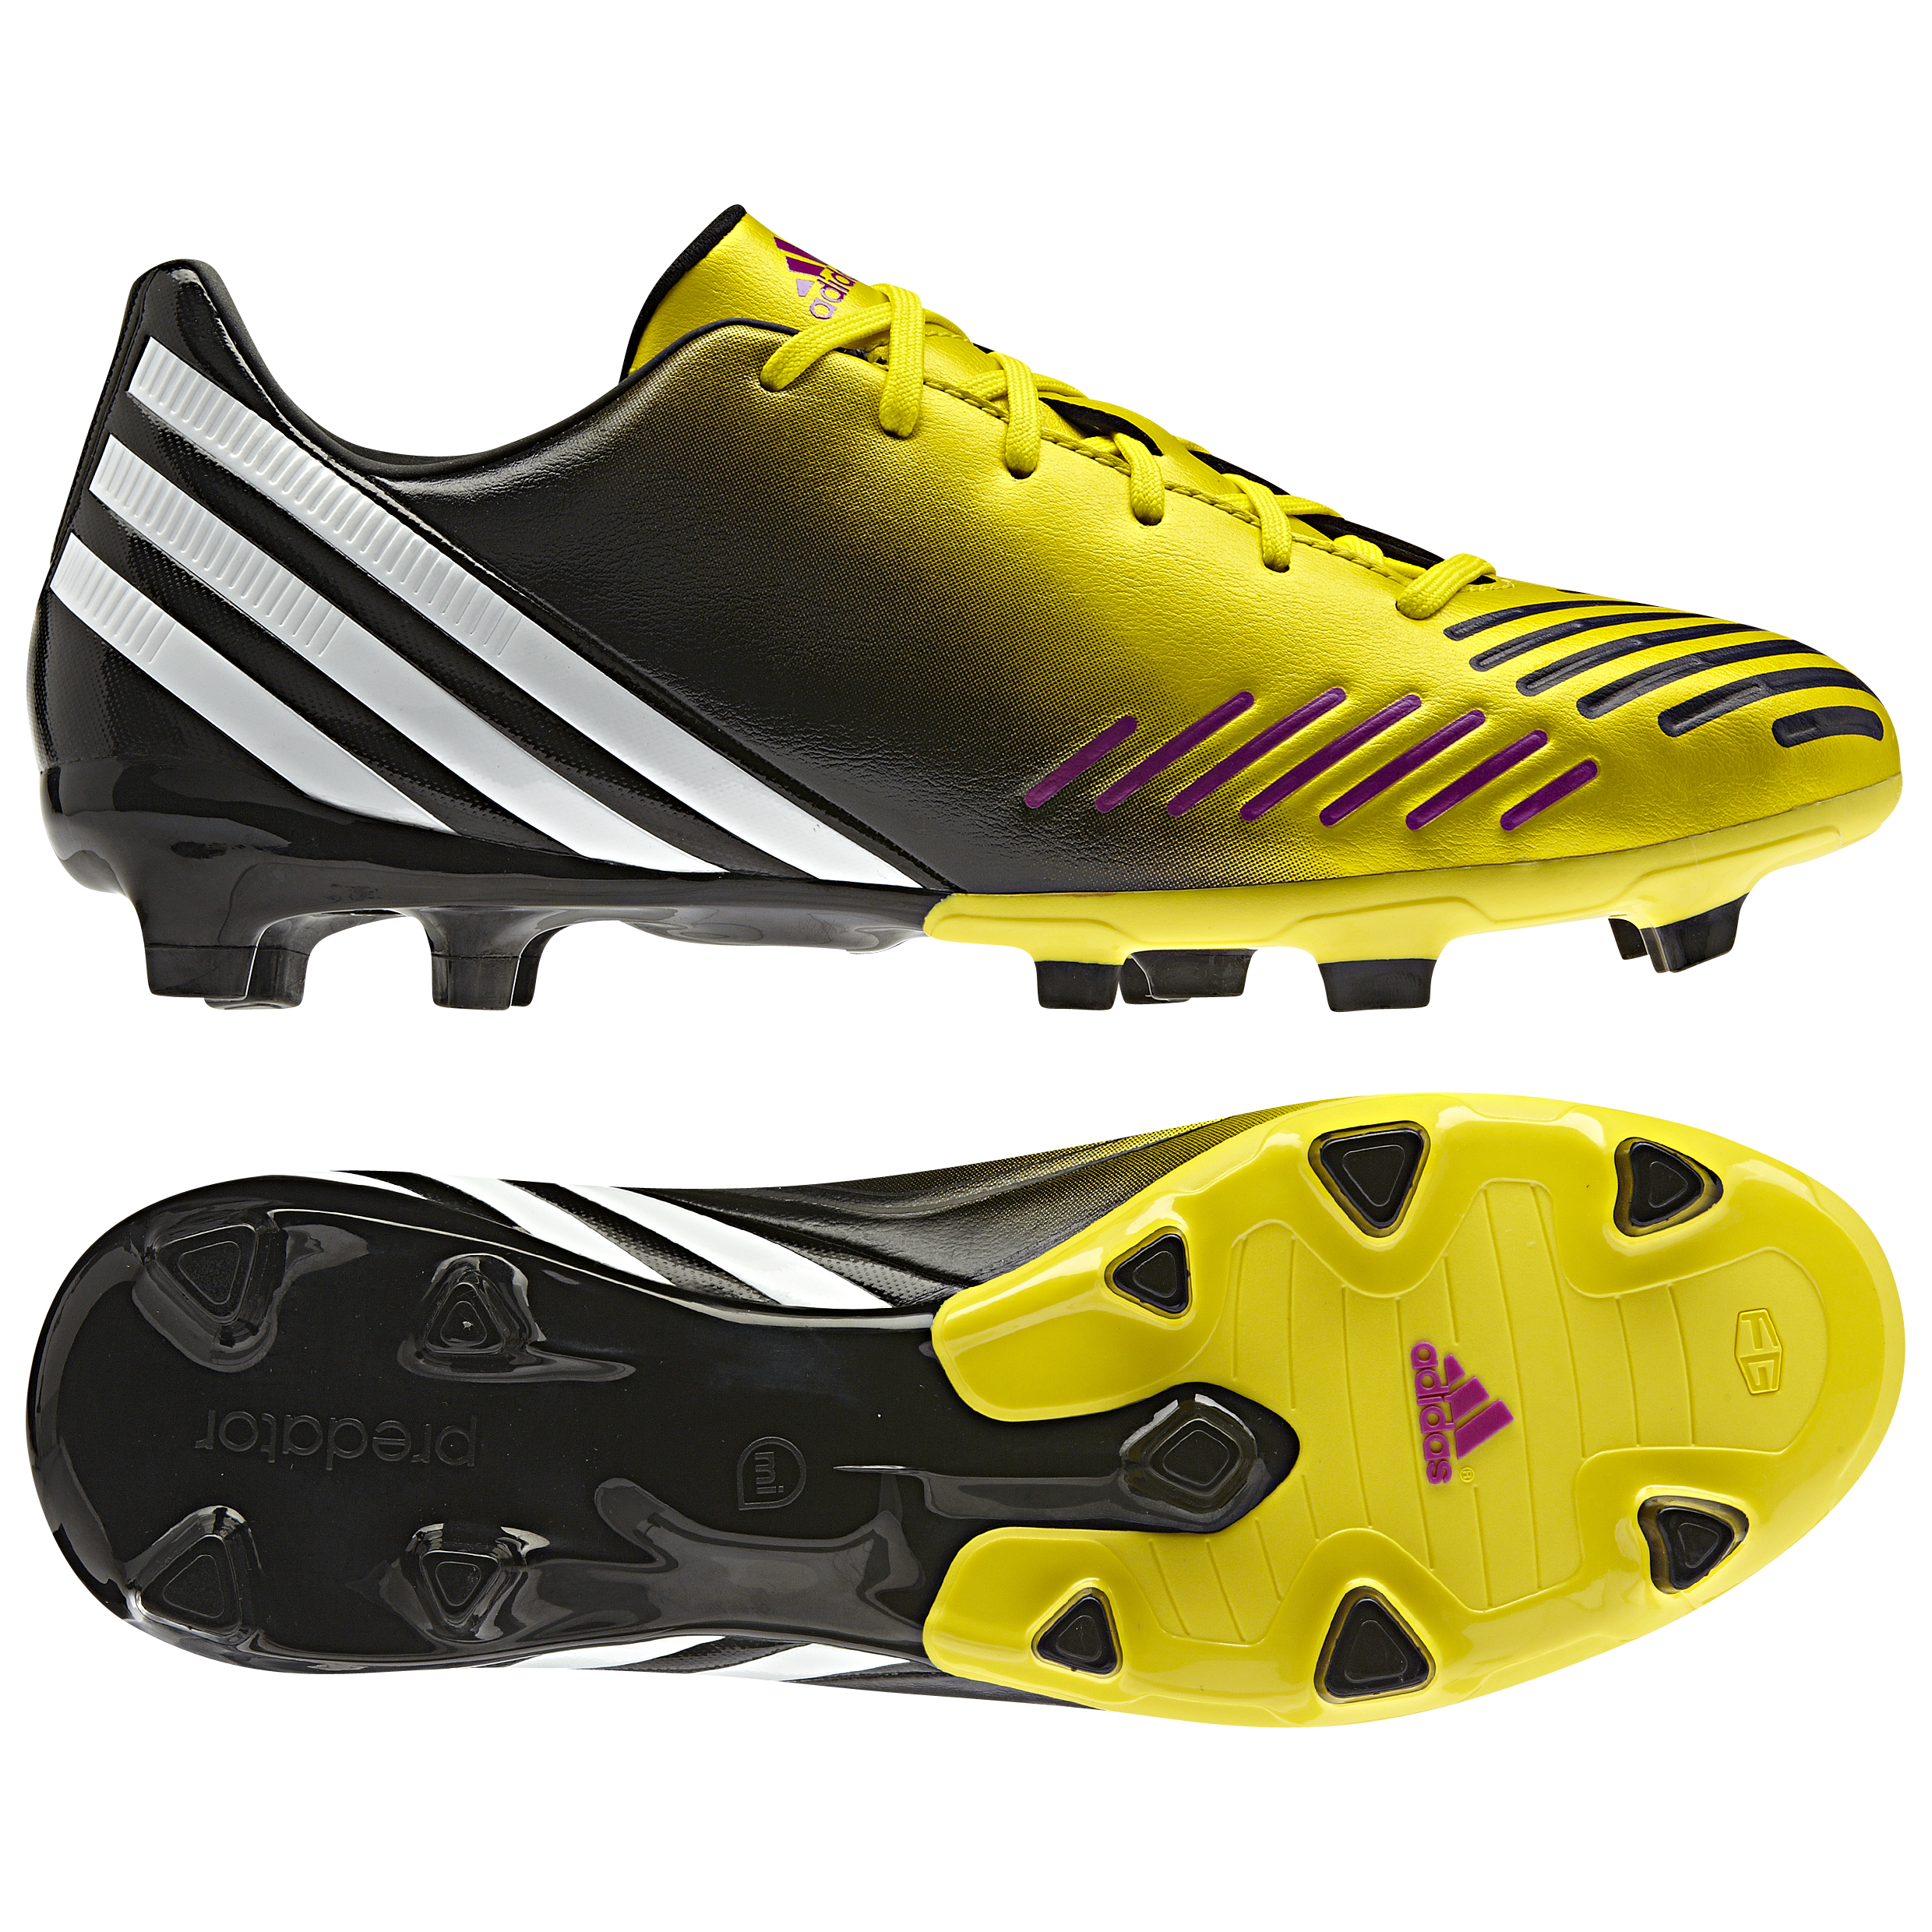 adidas Predator Absolado LZ TRX Firm Ground Football Boots - Vivid Yellow/Running White/Black